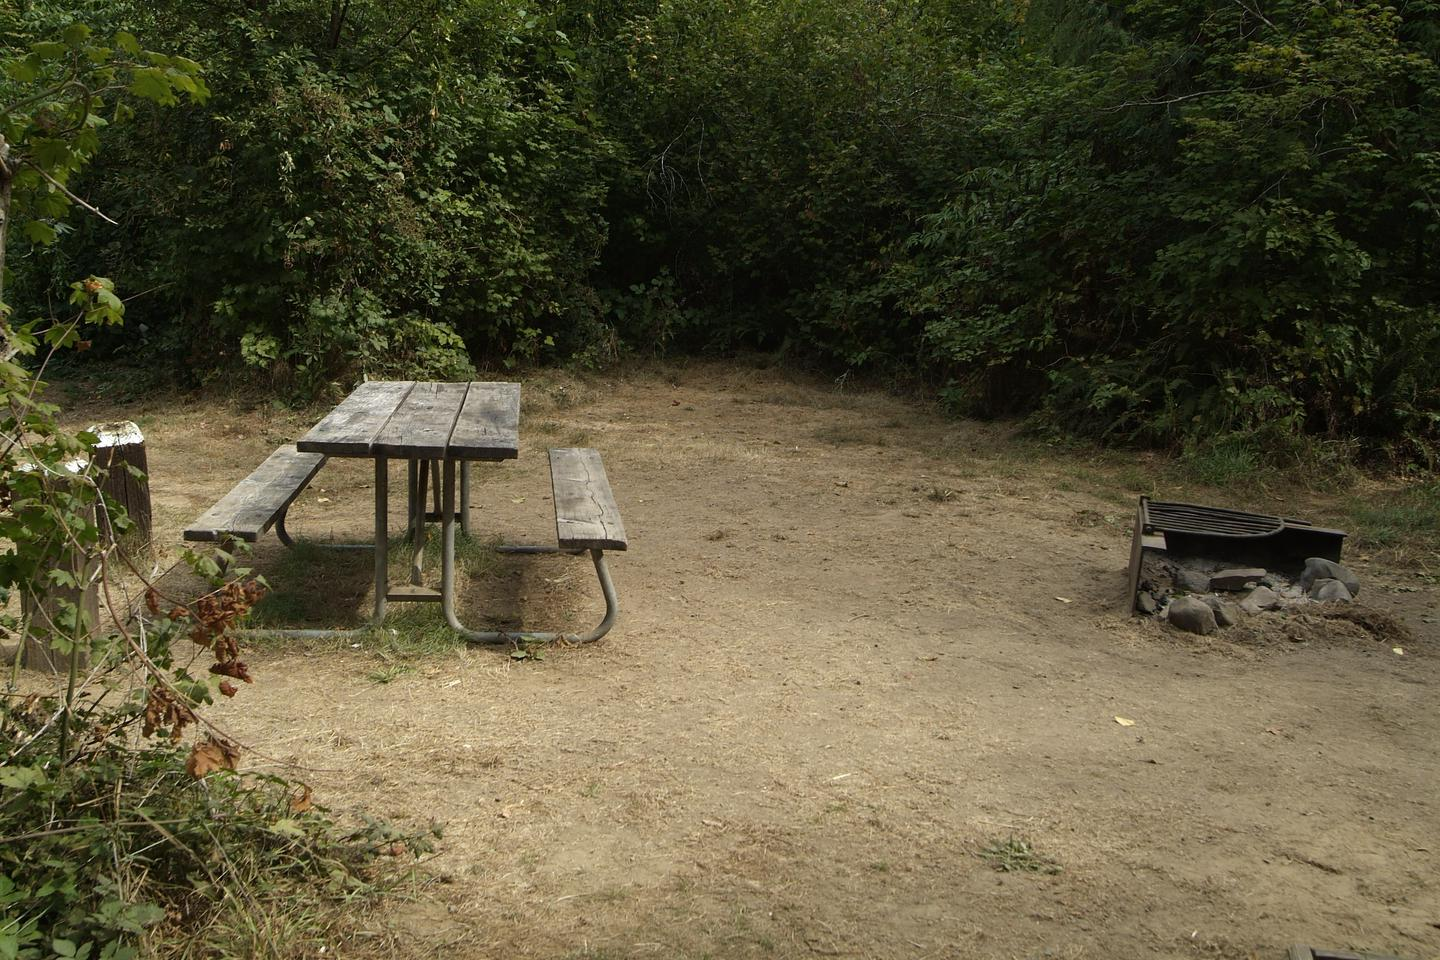 Table and fire ring for camp site 17. Camp site 17 table and fire ring.